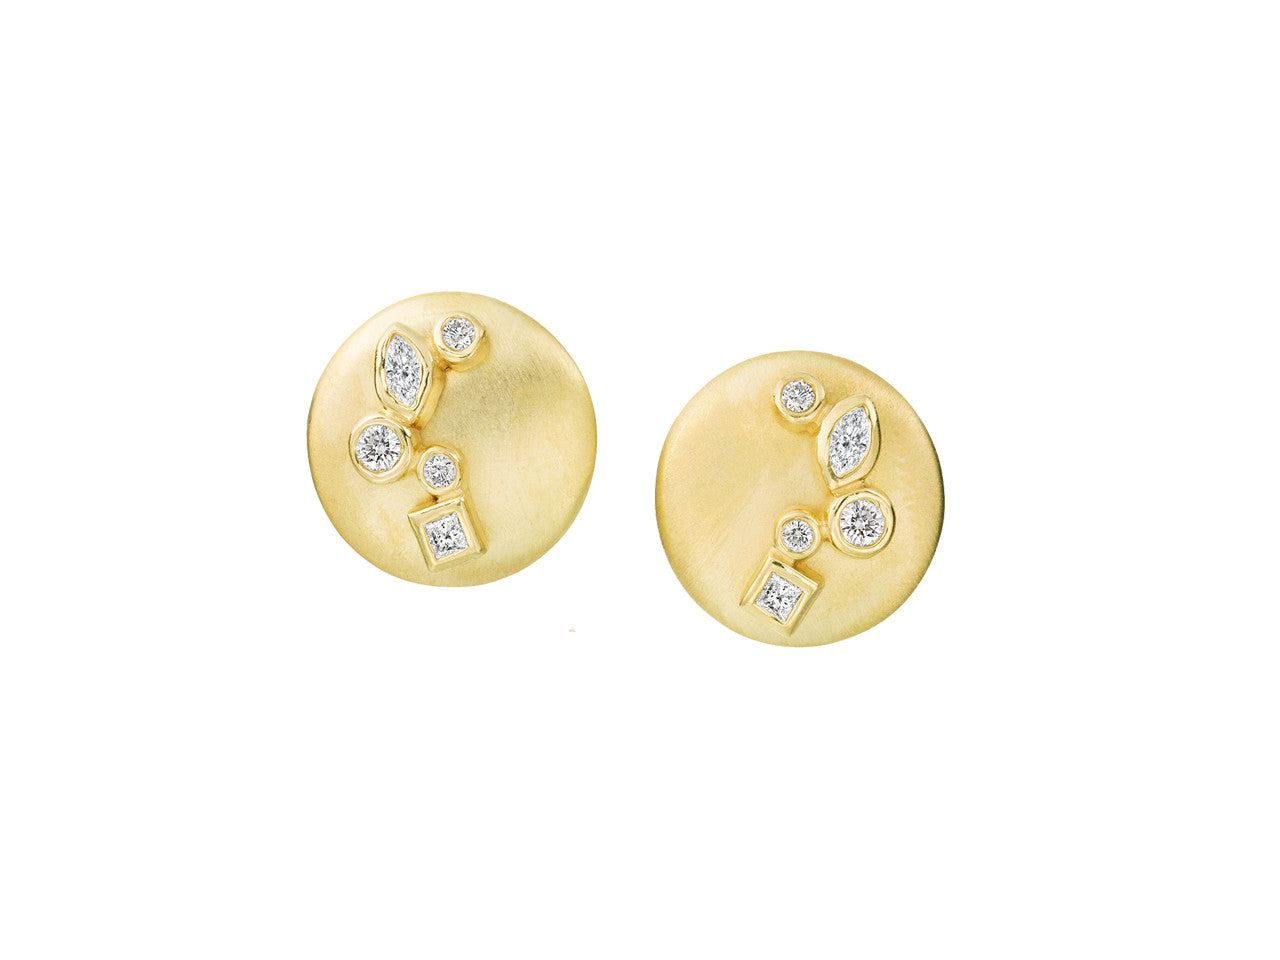 designer cognac and diamond cufflinkspremier earrings canary collections dice cufflinks